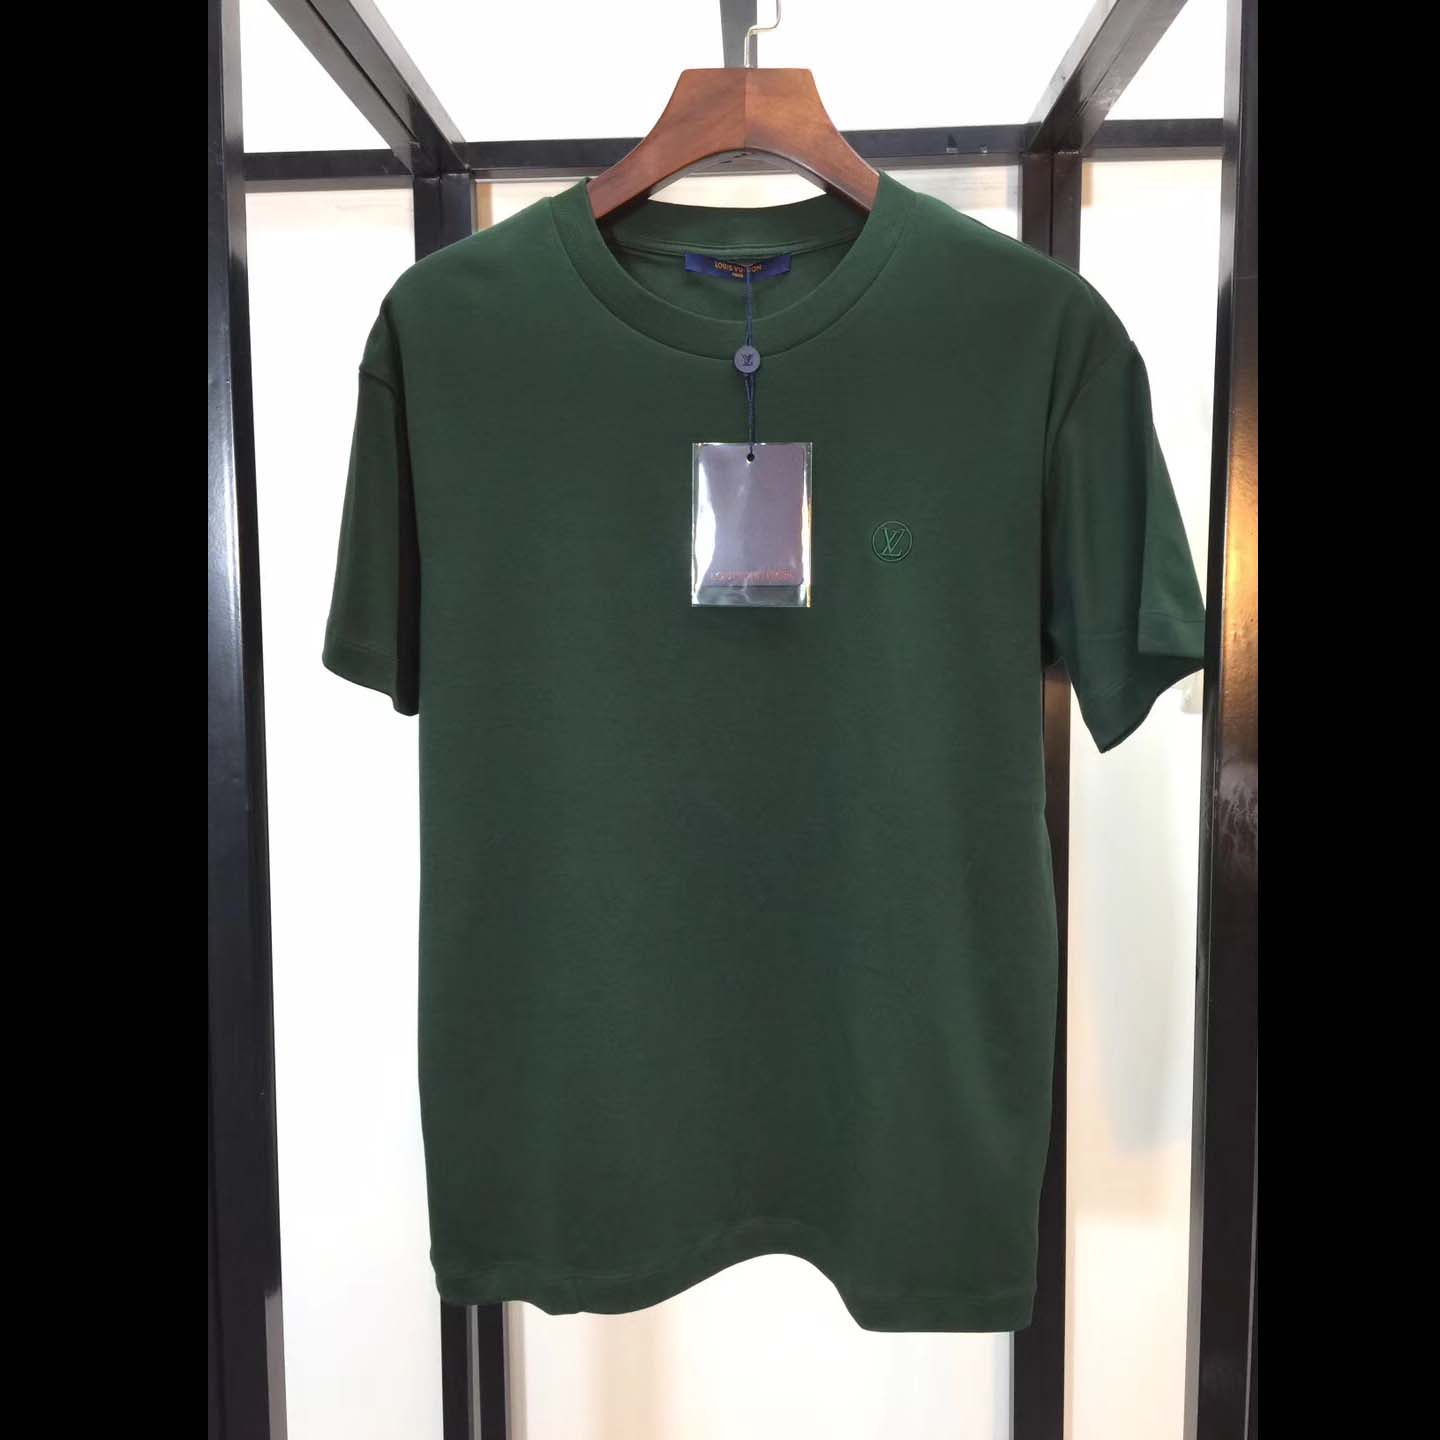 Louis Vuitton Small Embroidered Logo T-shirt in Dark Green.T-Shirts & Polos